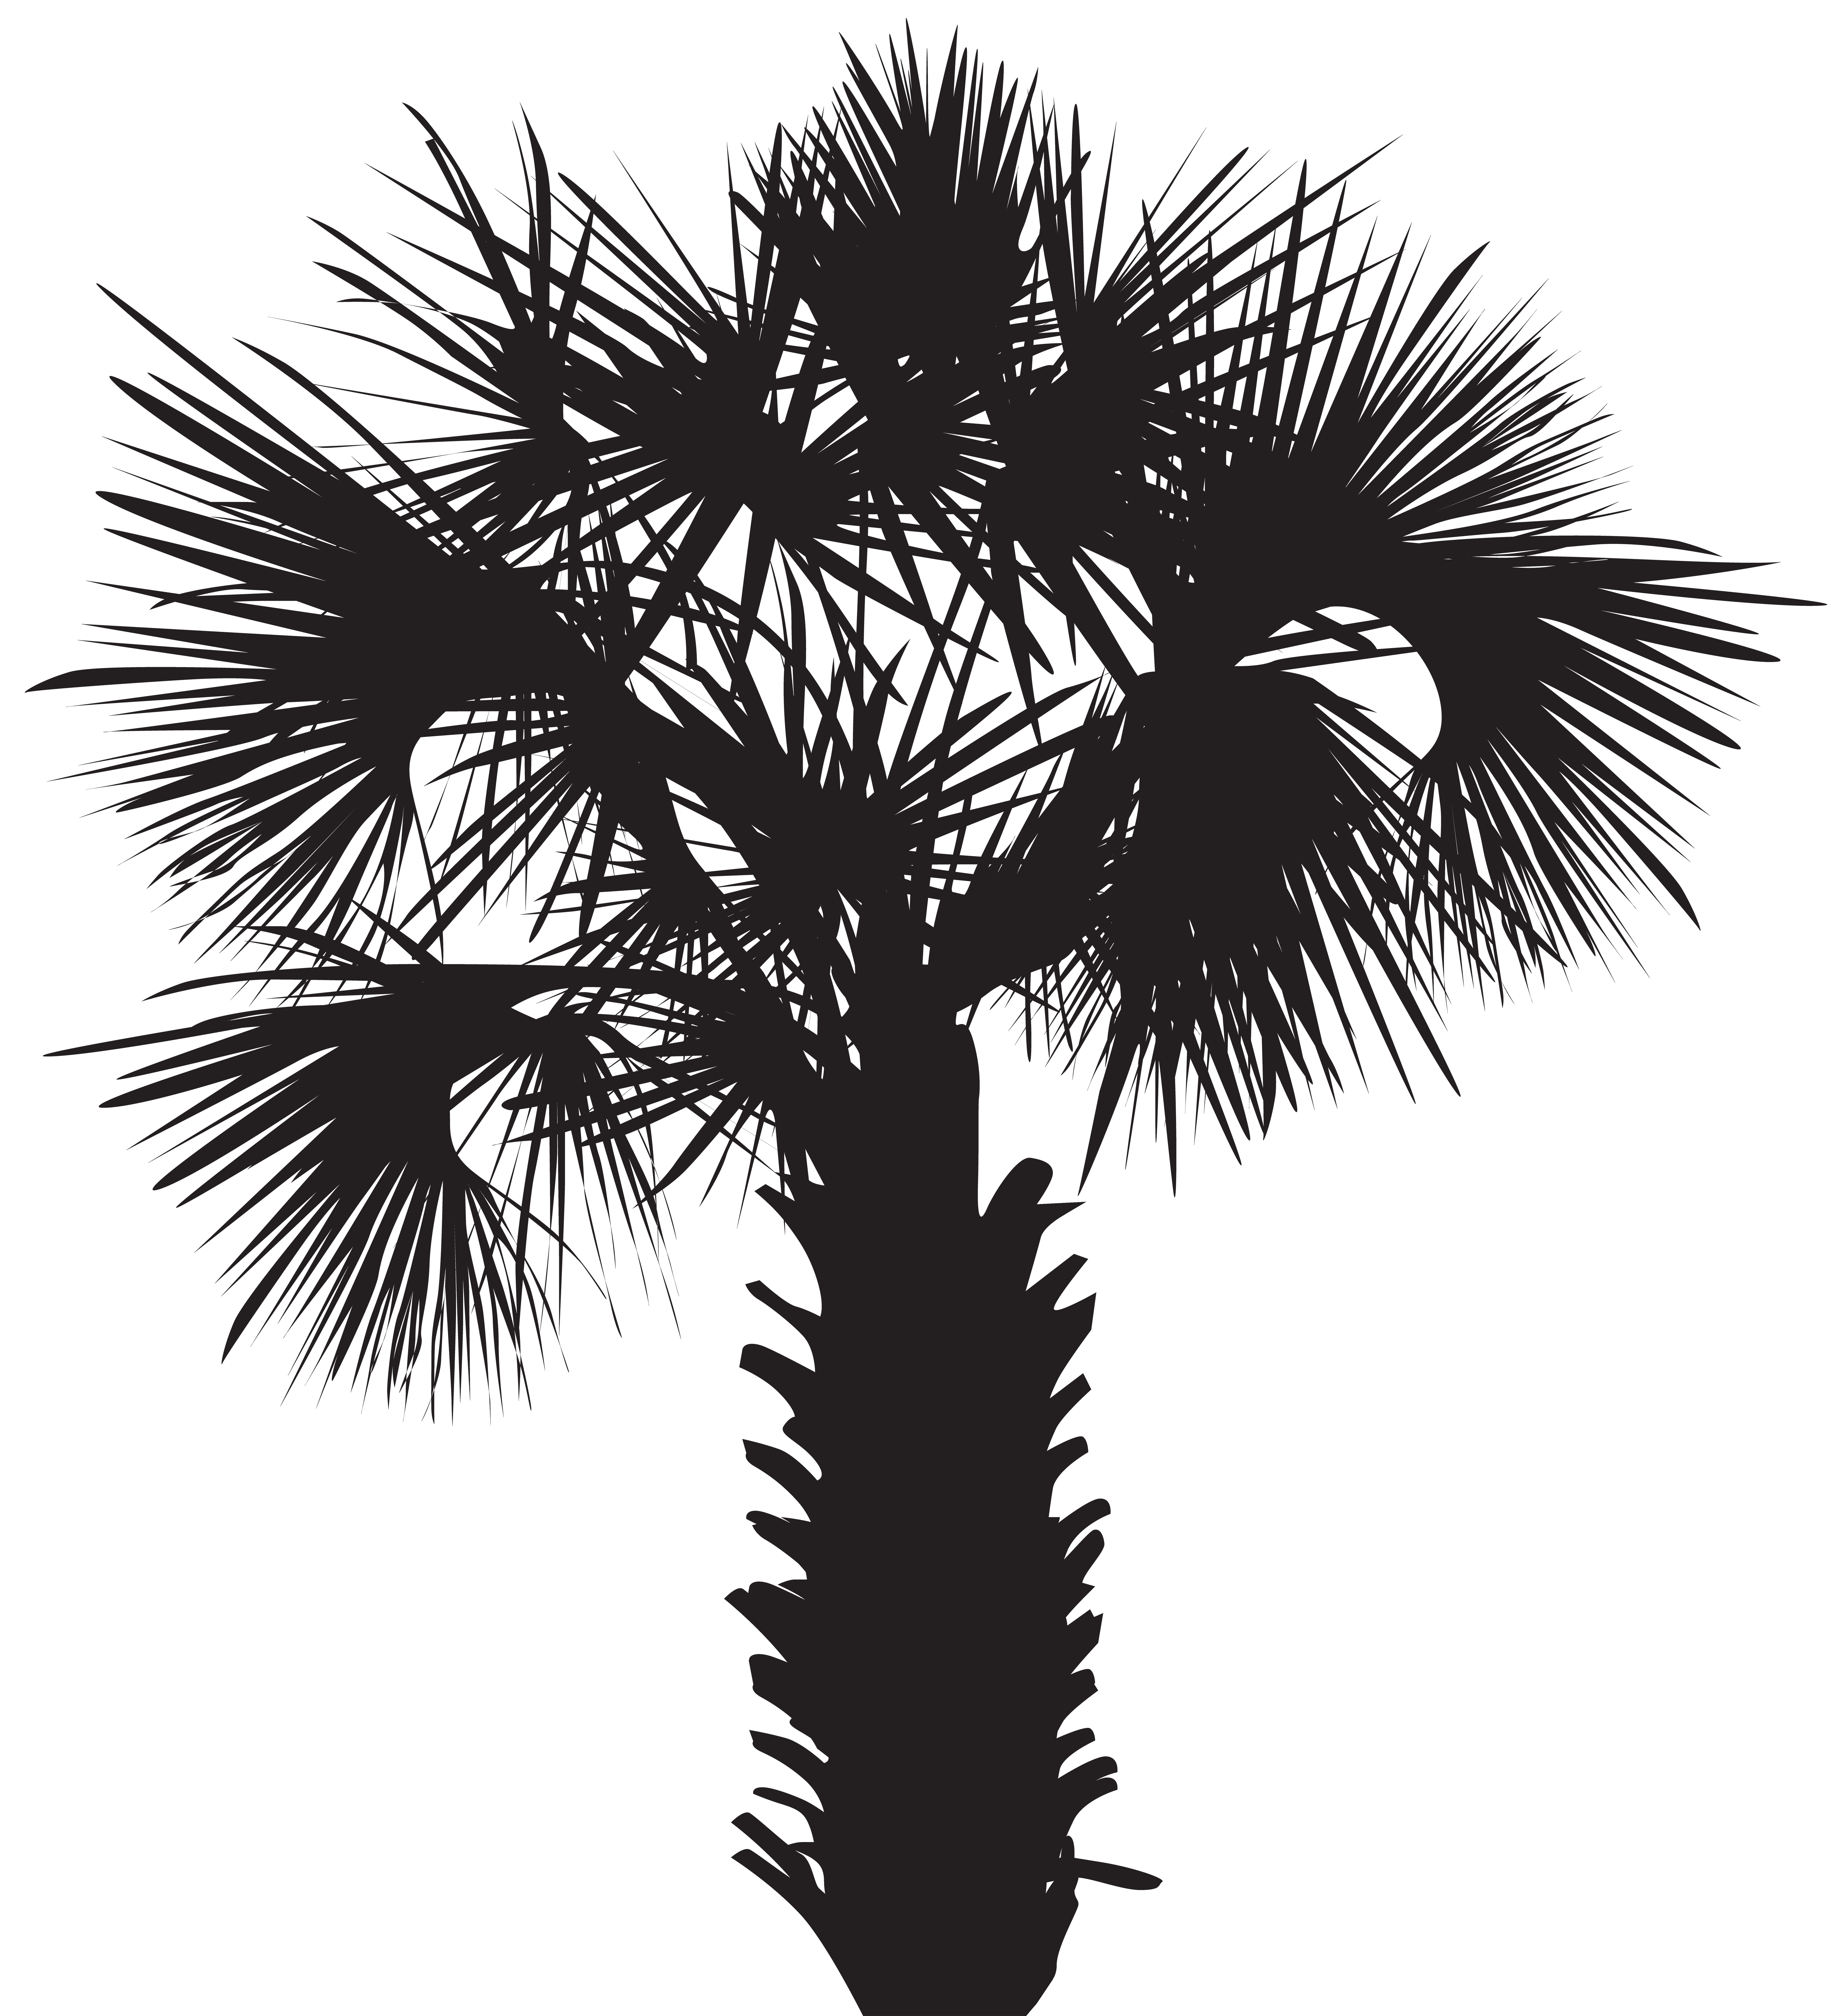 Palm tree clipart black and white png. Silhouette clip art image